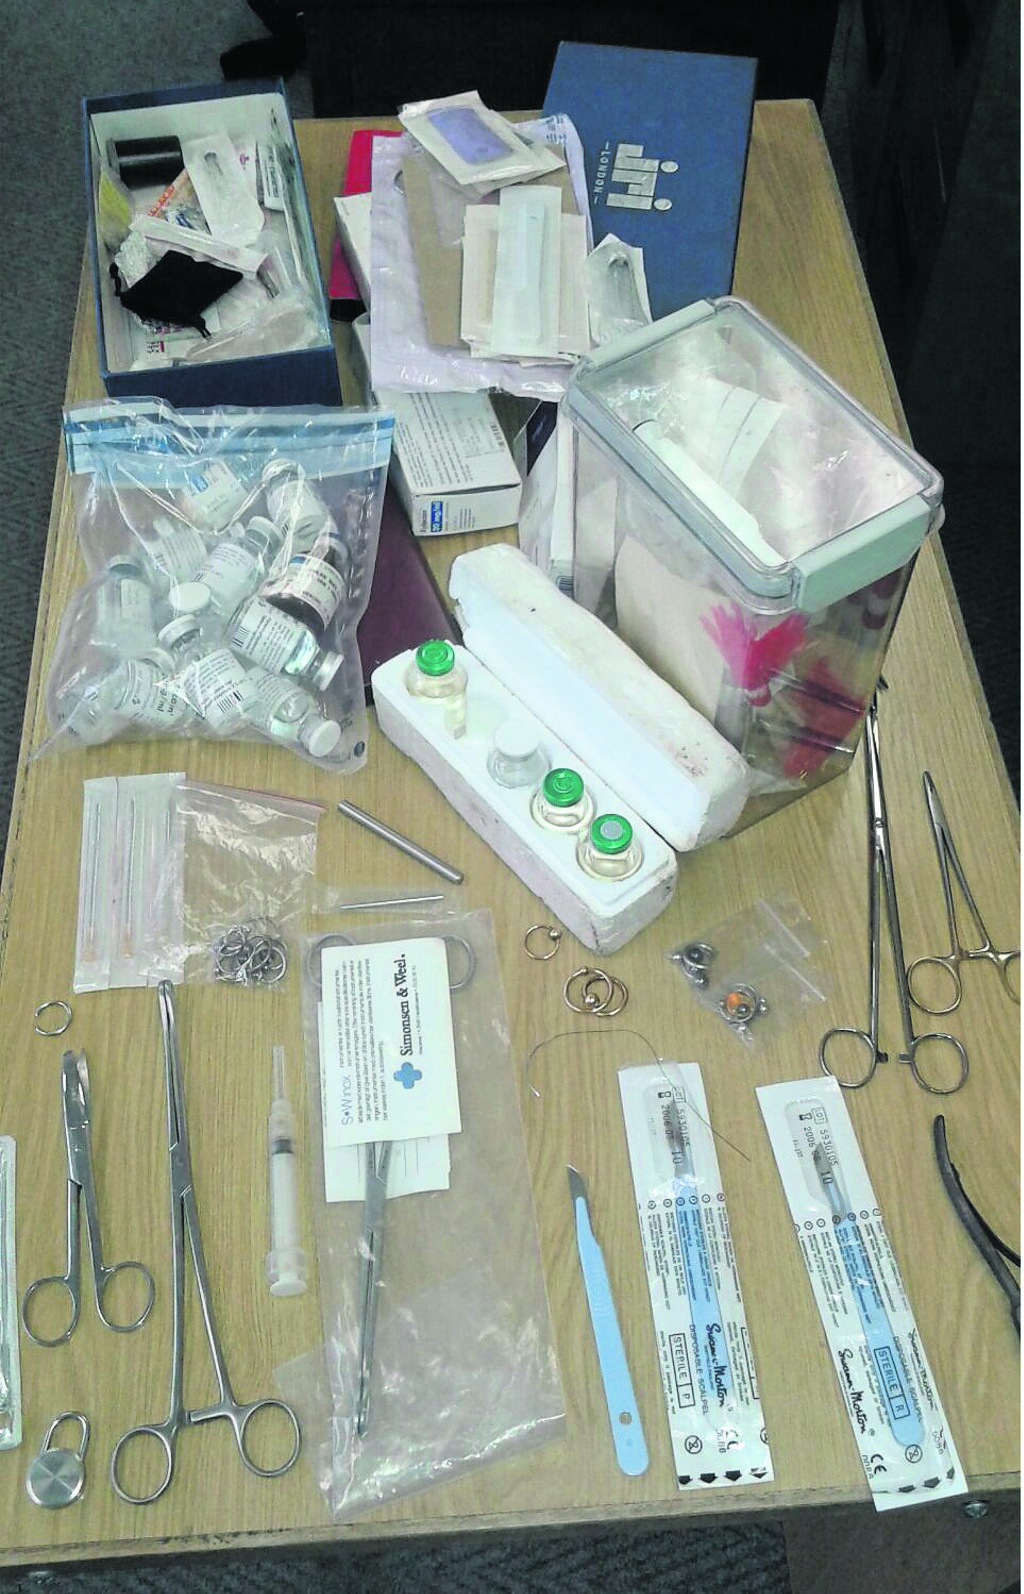 These tools were found in the house of a Danish weapons dealer who allegedly sliced off women's sexual organs and kept them in his freezer.